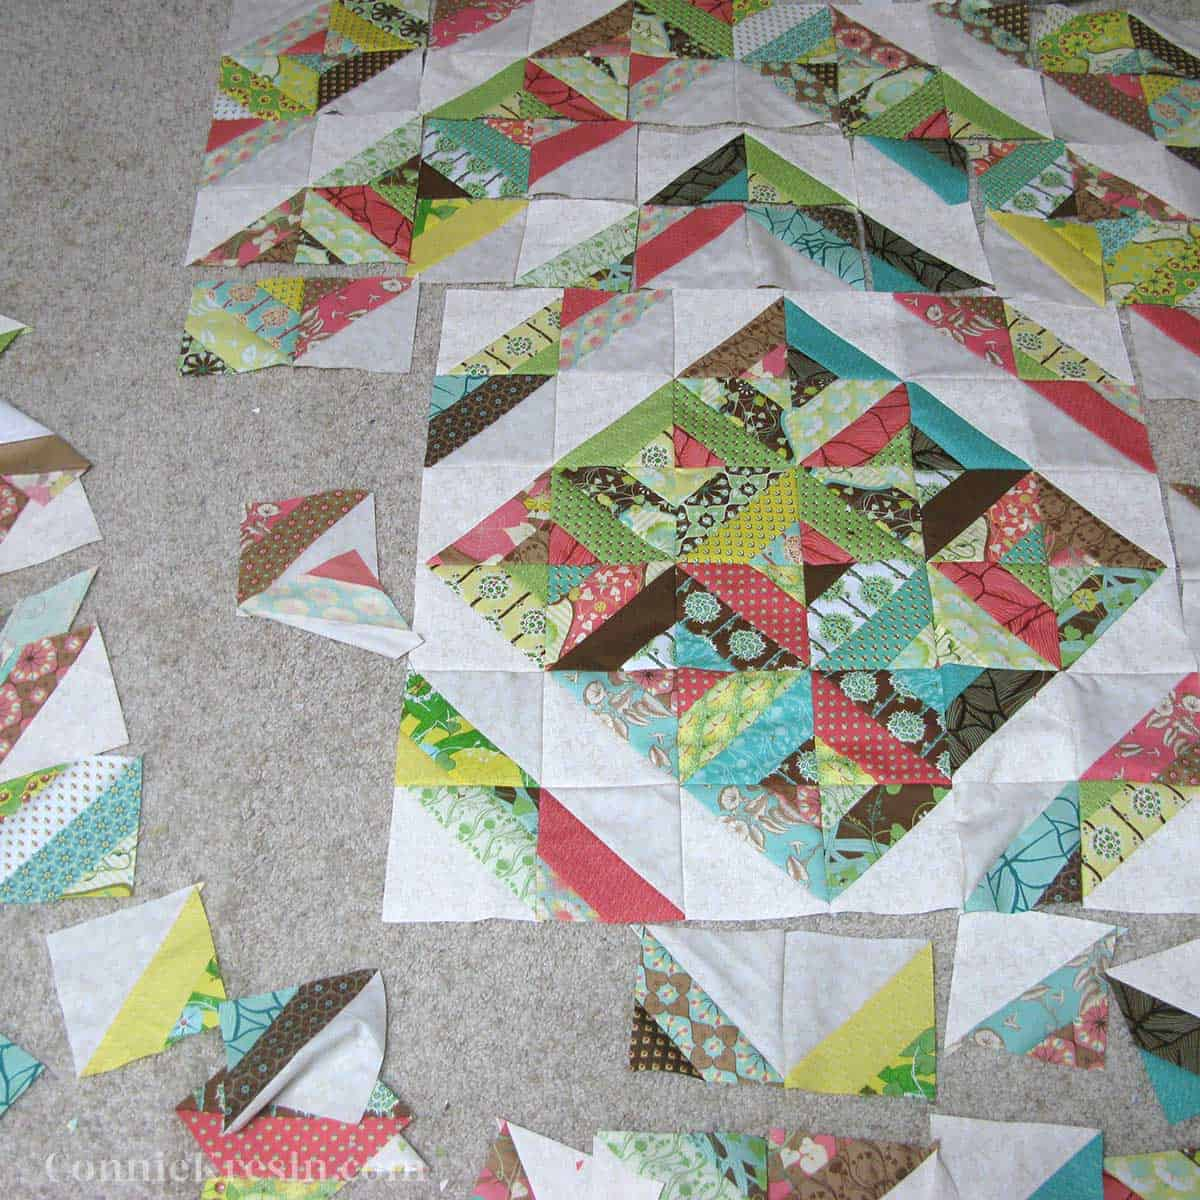 laying out the quilt blocks